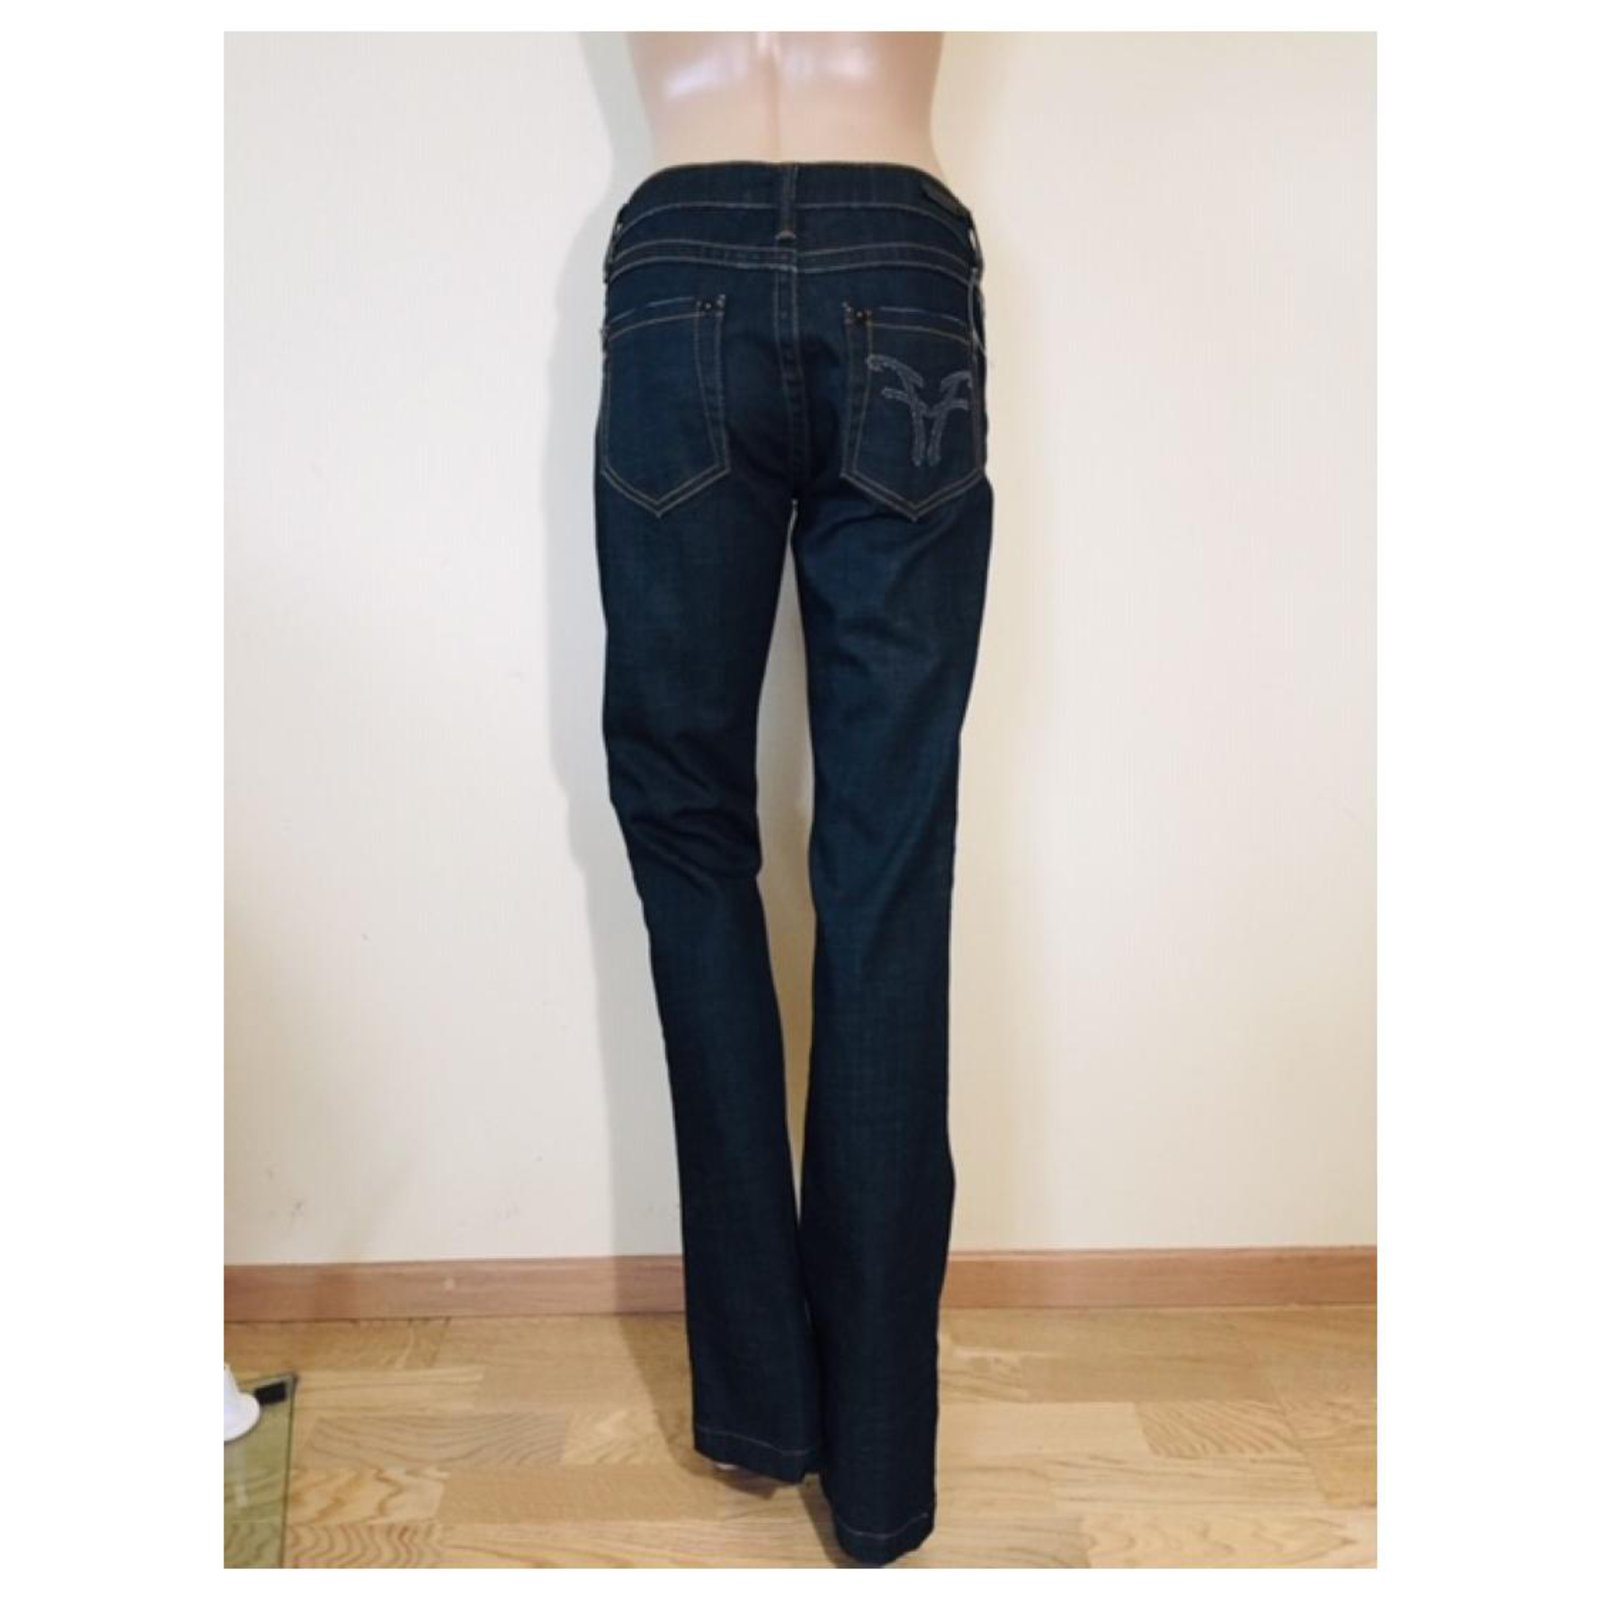 newest caa26 33f0c Jeans